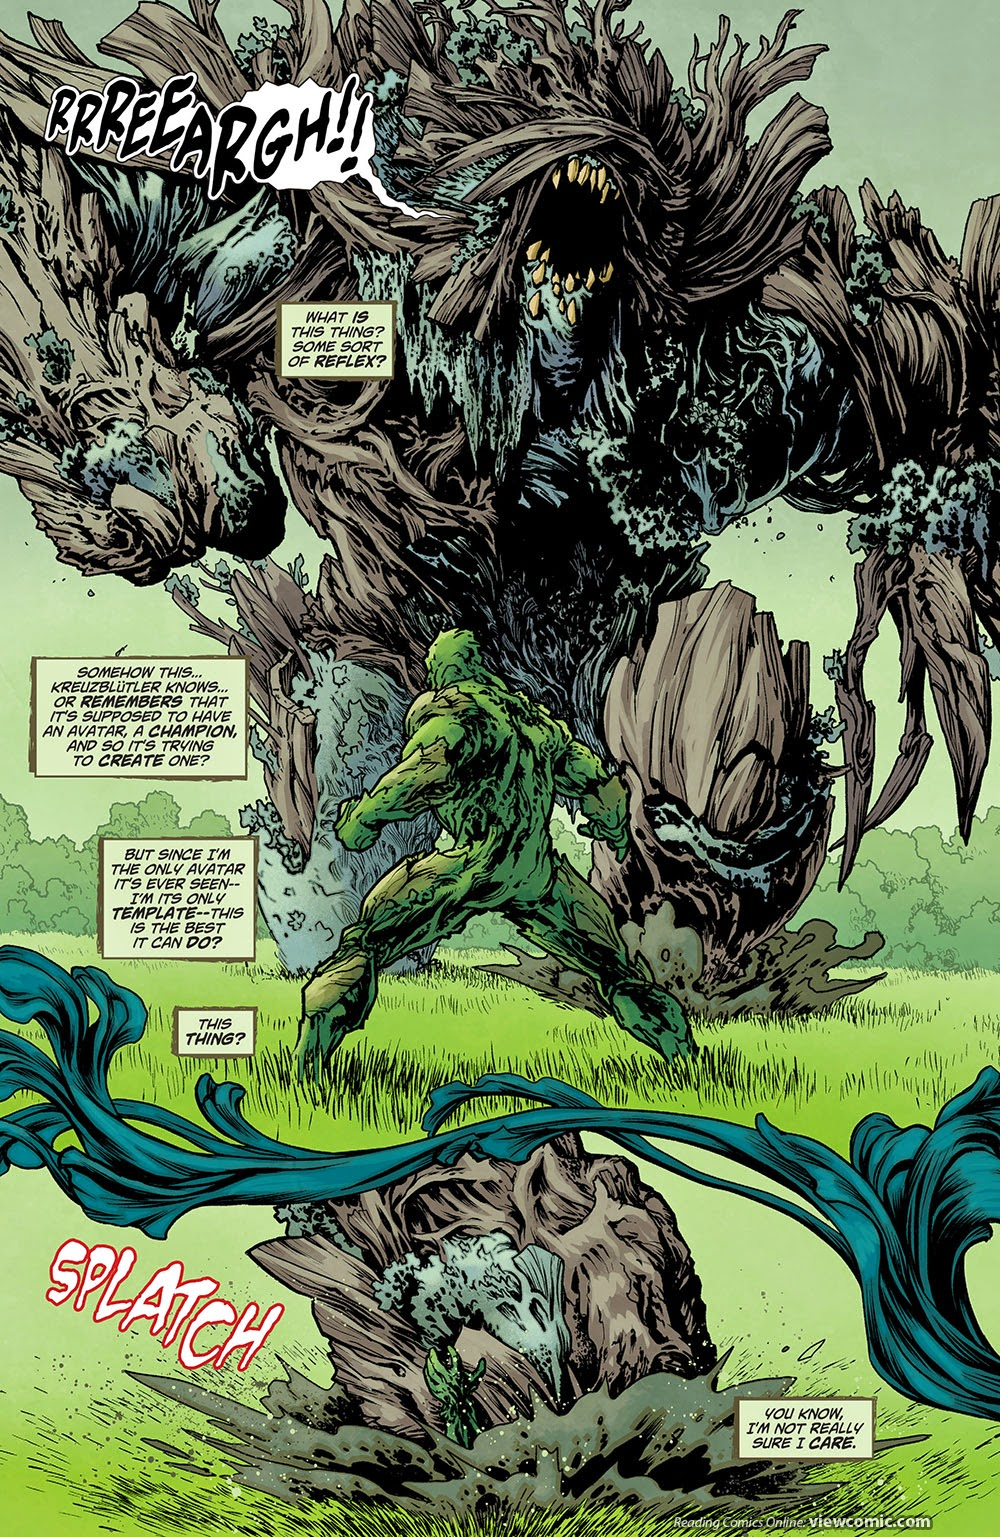 Swamp thing 032 2014 reading comics for The thing free online